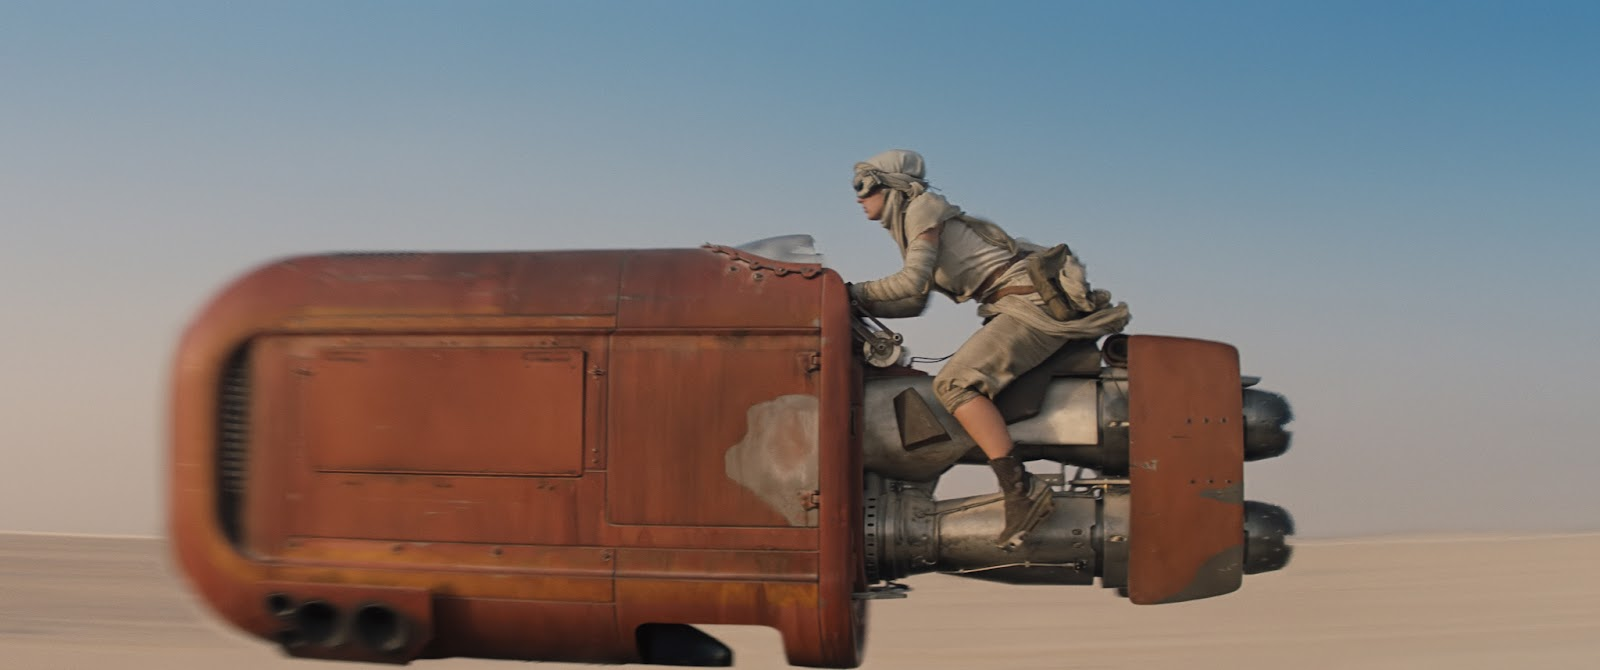 Star Wars: The Force Awakens Daisy Ridley on a Jet Cycle